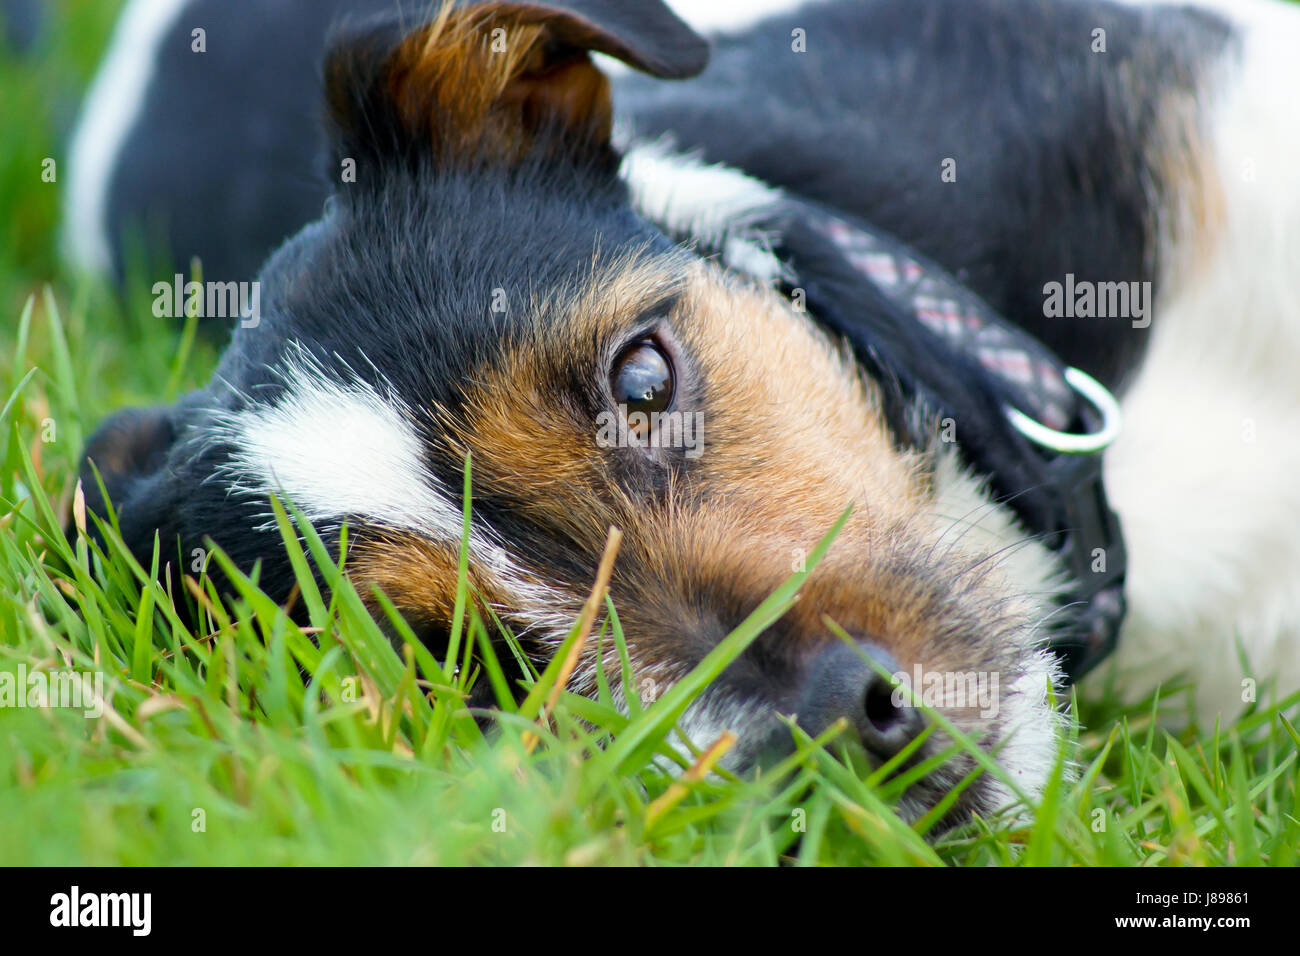 A Jack Russell Terrier looks up from the grass - Mans best friend - Stock Image